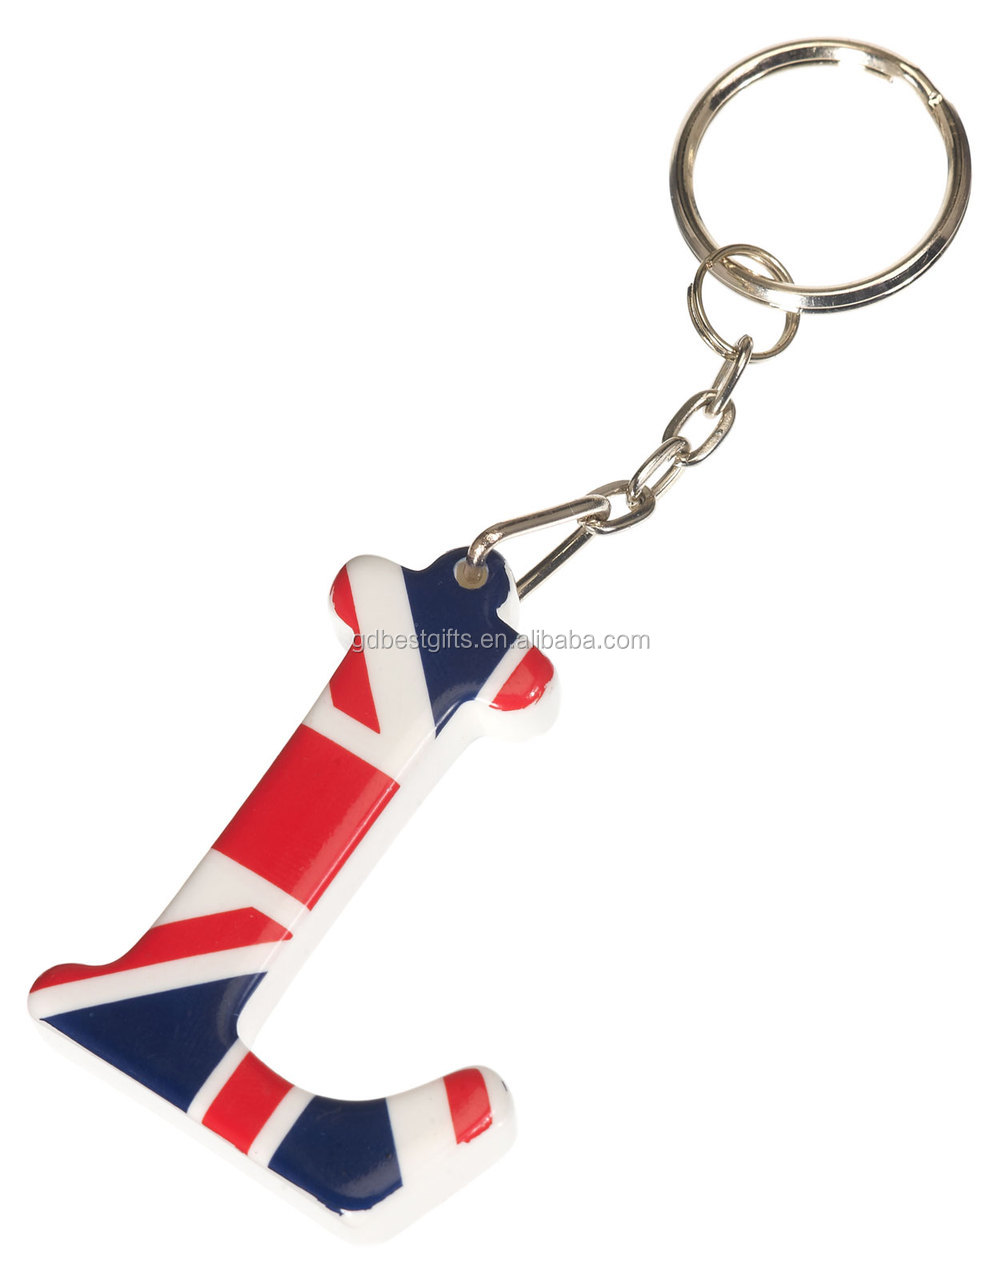 Zinc Alloy Keychain/keyring/key Chain/key Ring Manufacturers In ...